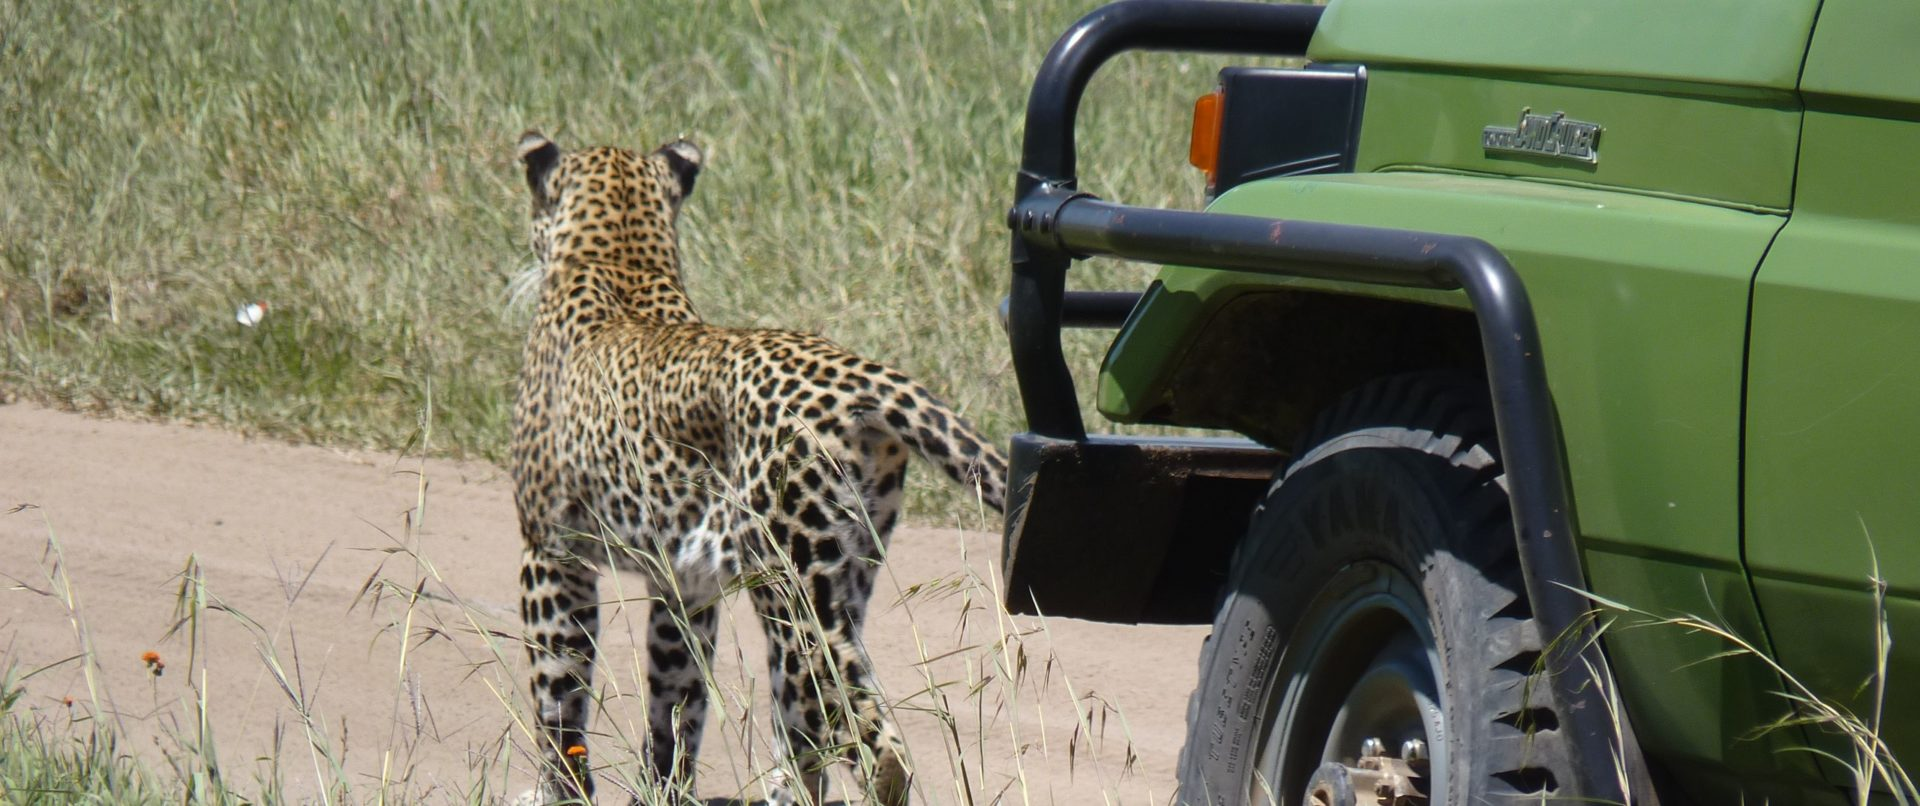 Leopard by jeep in Serengeti